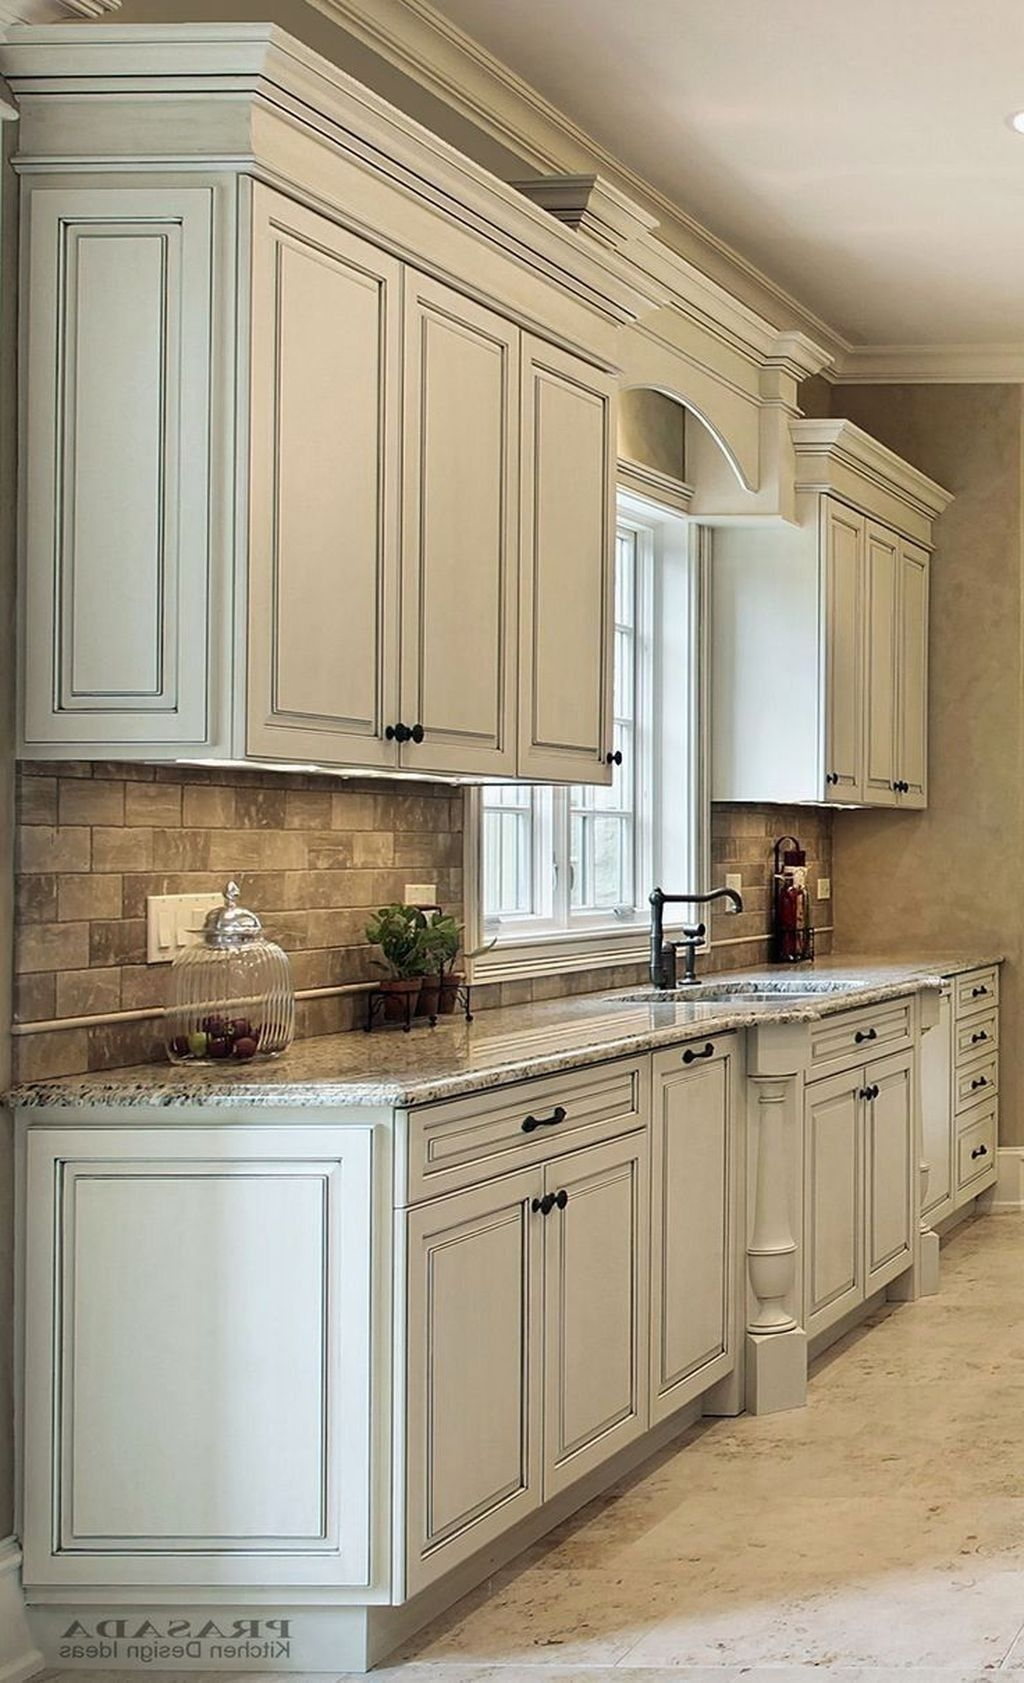 40+ Classy White Kitchen Cabinets Decor Ideas #darkkitchencabinets